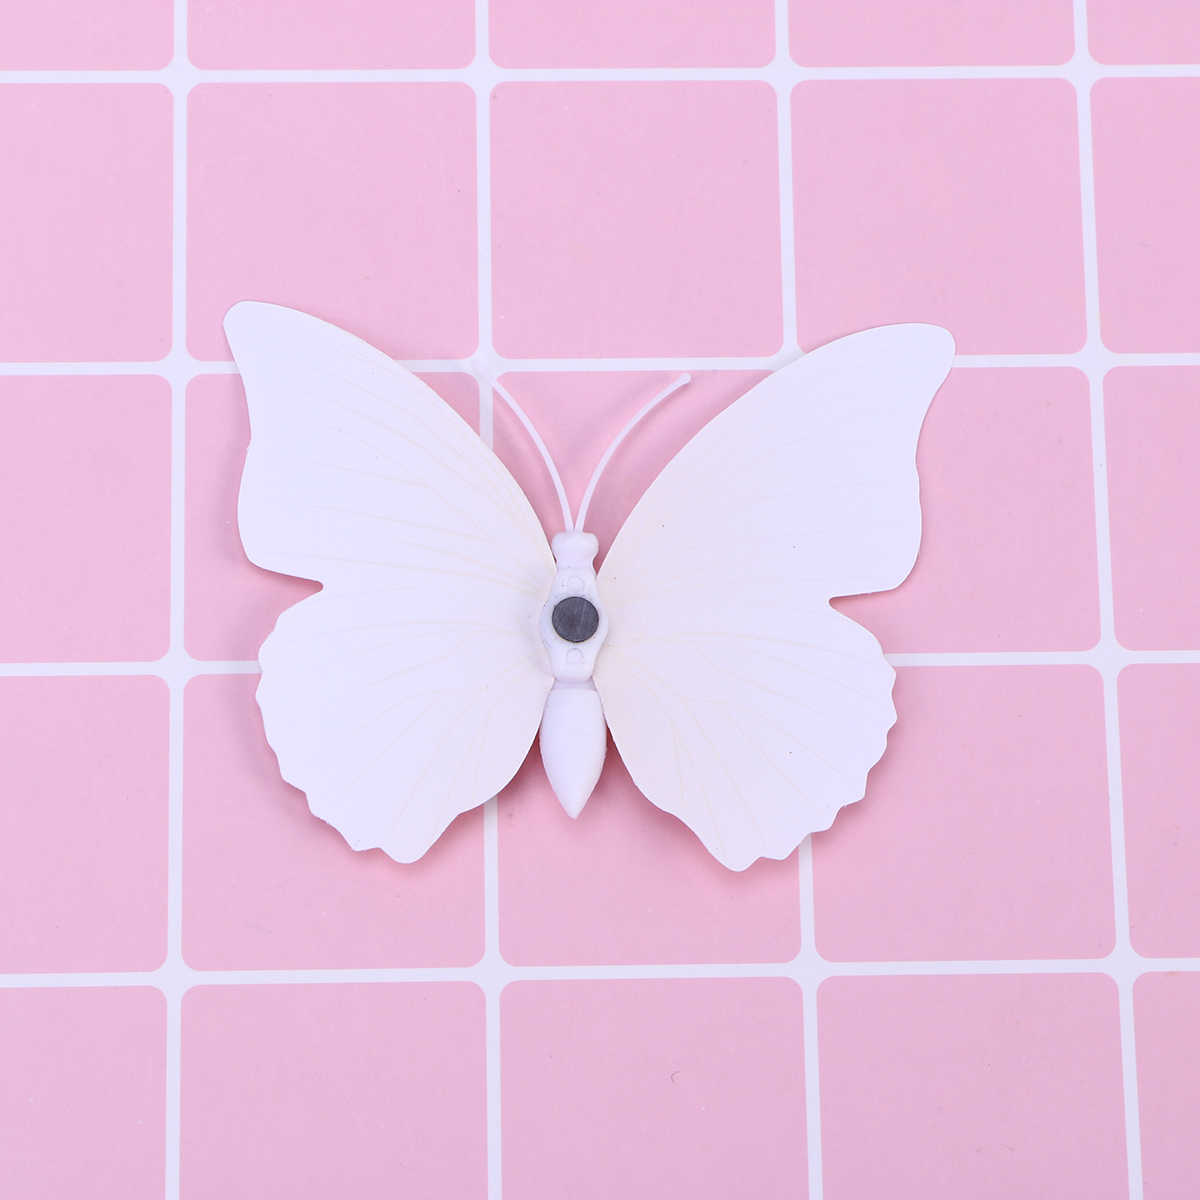 12 Pcs 3D Butterfly Wall Sticker Removable Wall Decals Art Murals for Bedroom Living Room Kitchen-Pin Style(White)